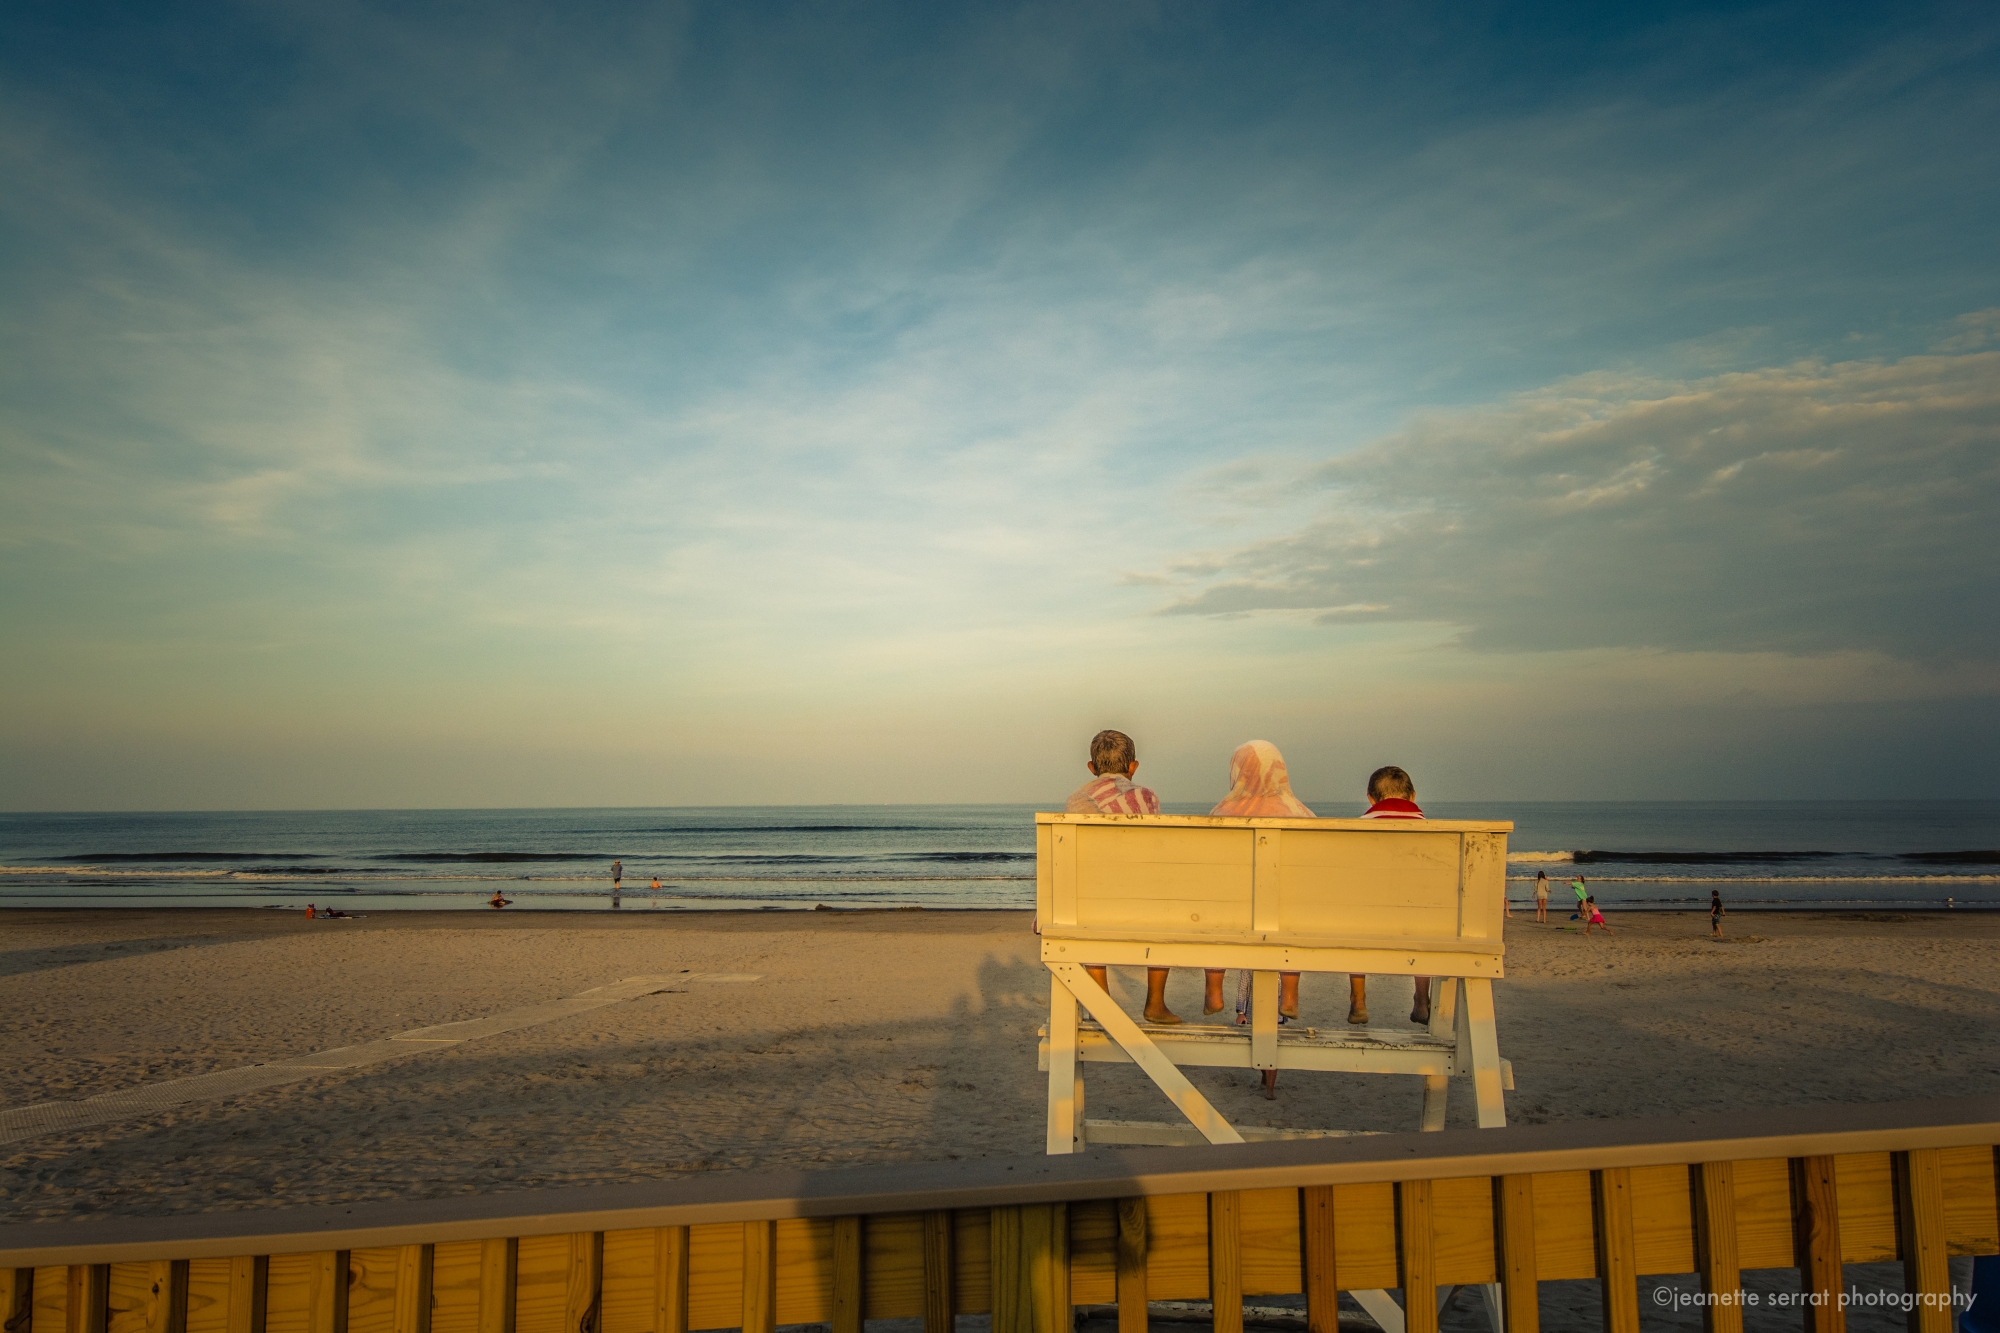 Stone Harbor - Kids on Lifeguard Station